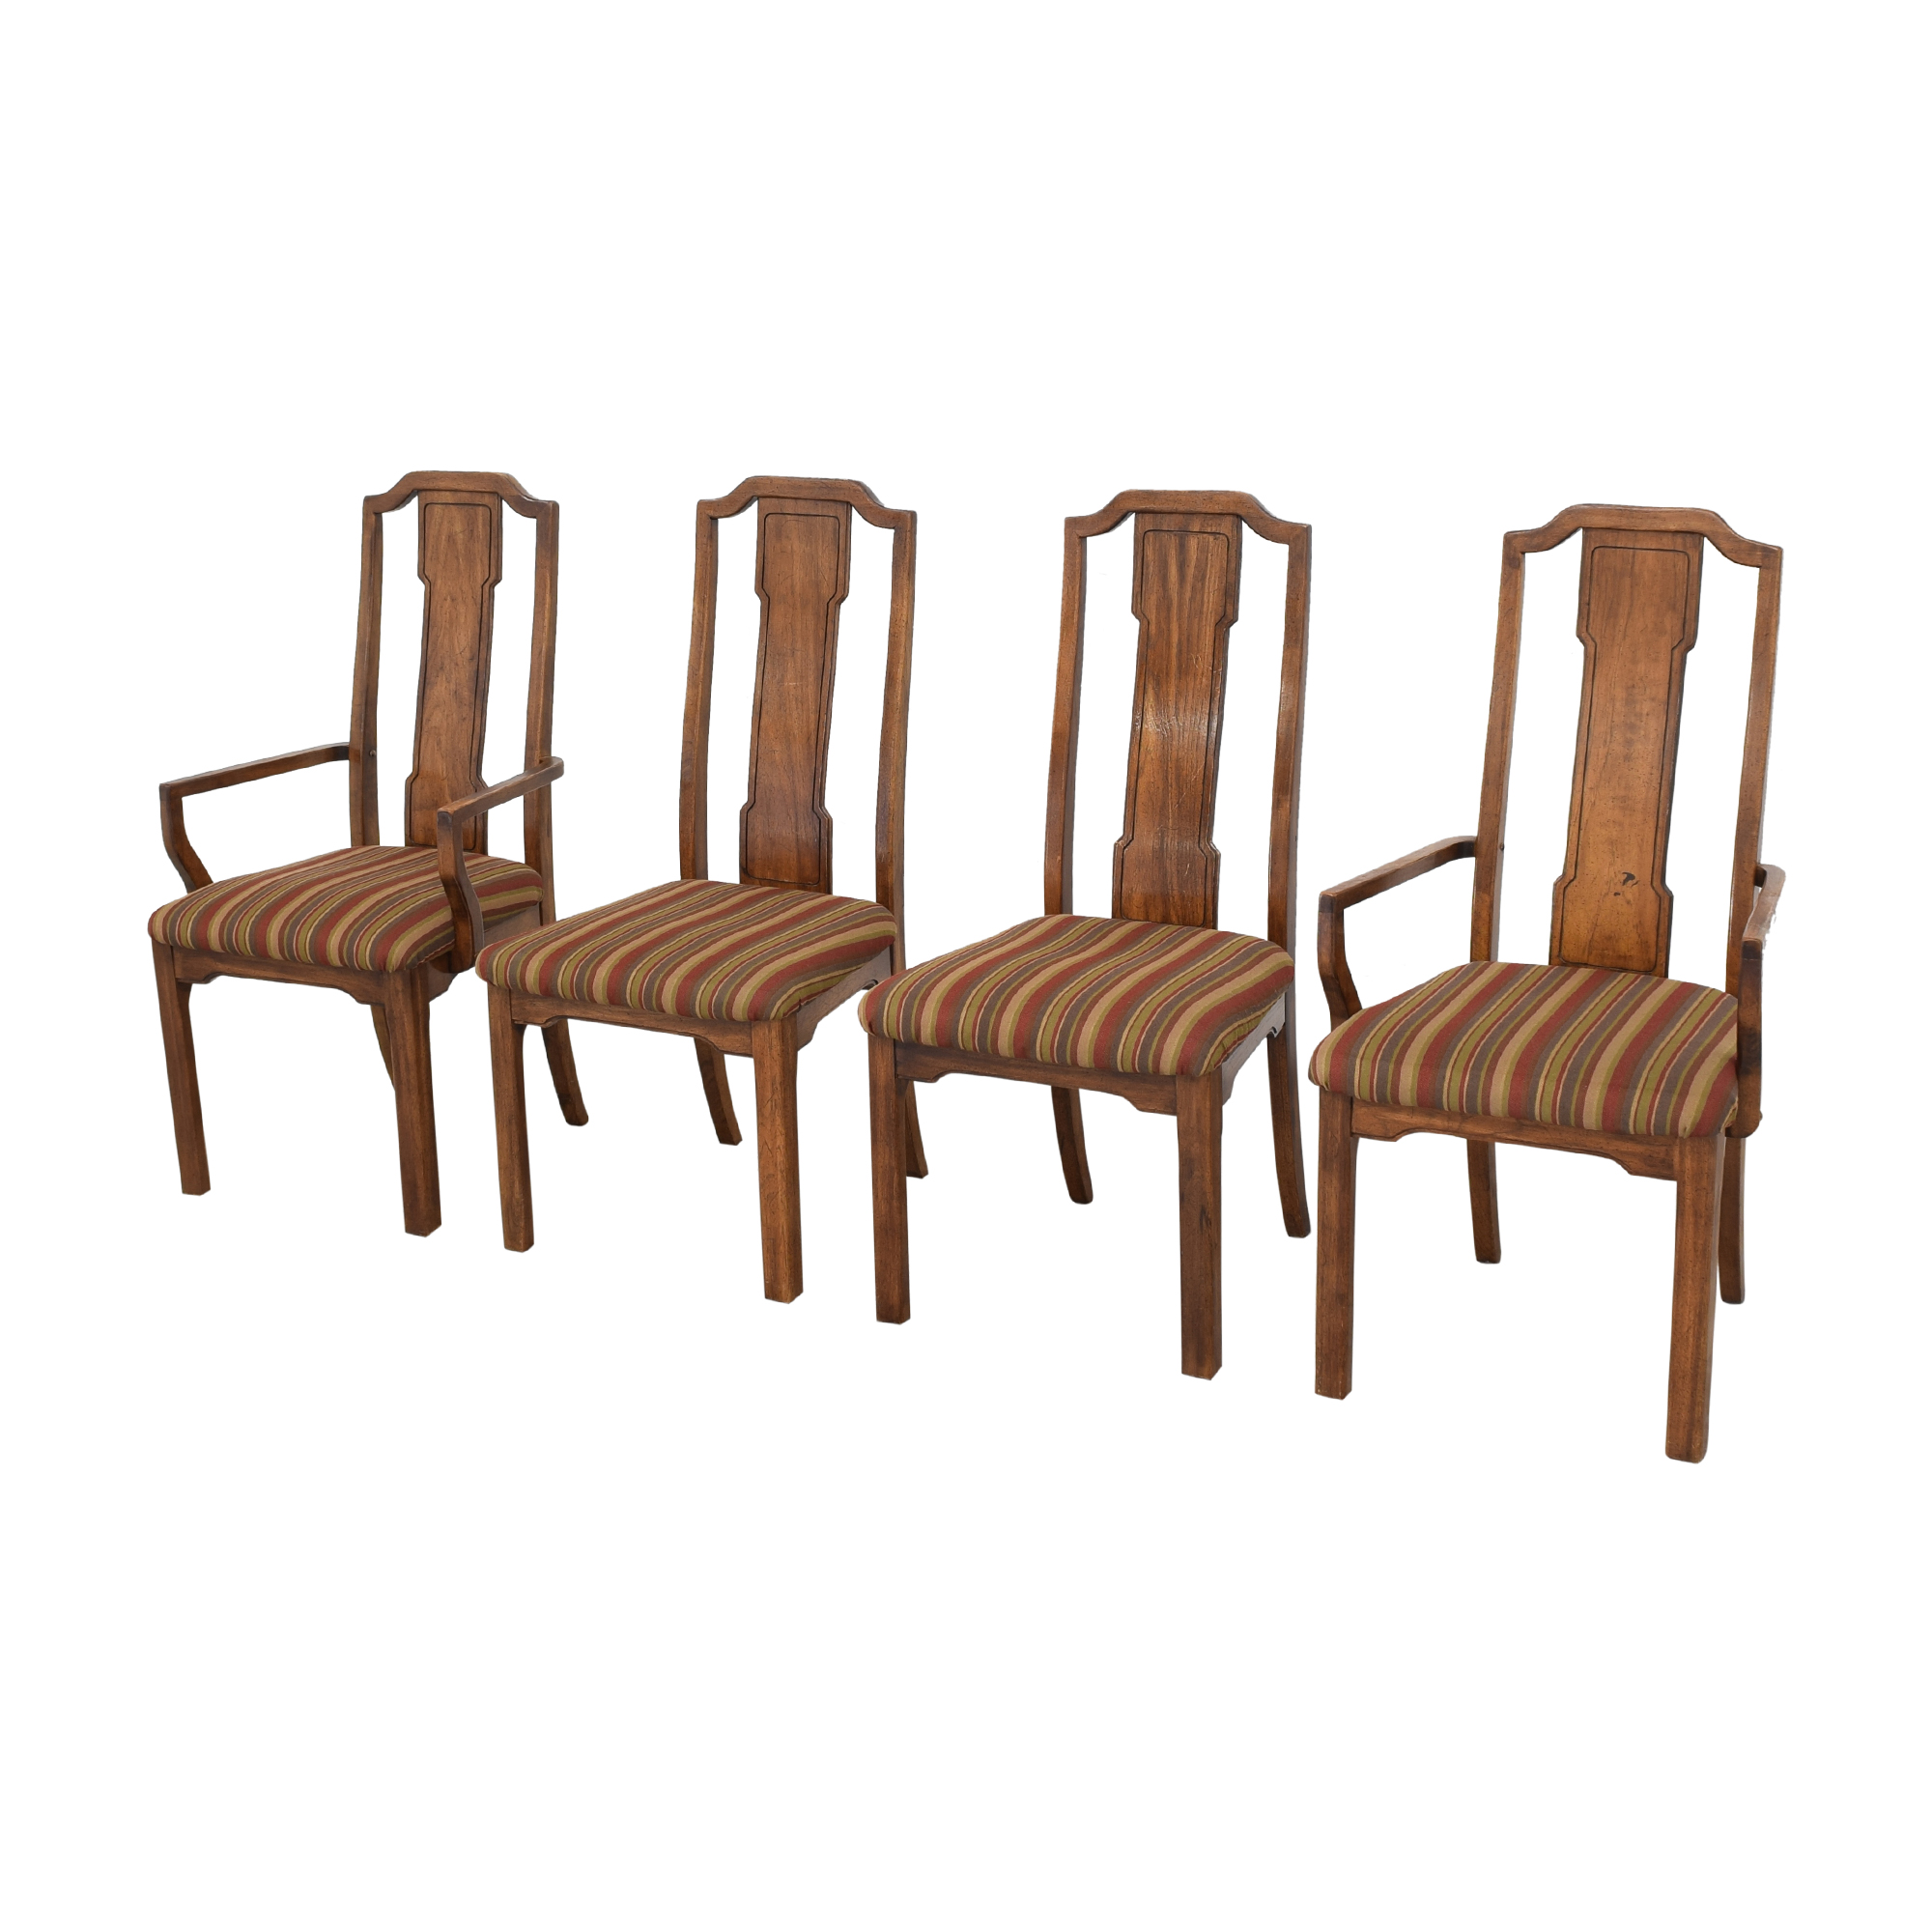 Thomasville Thomasville Dining Chairs coupon